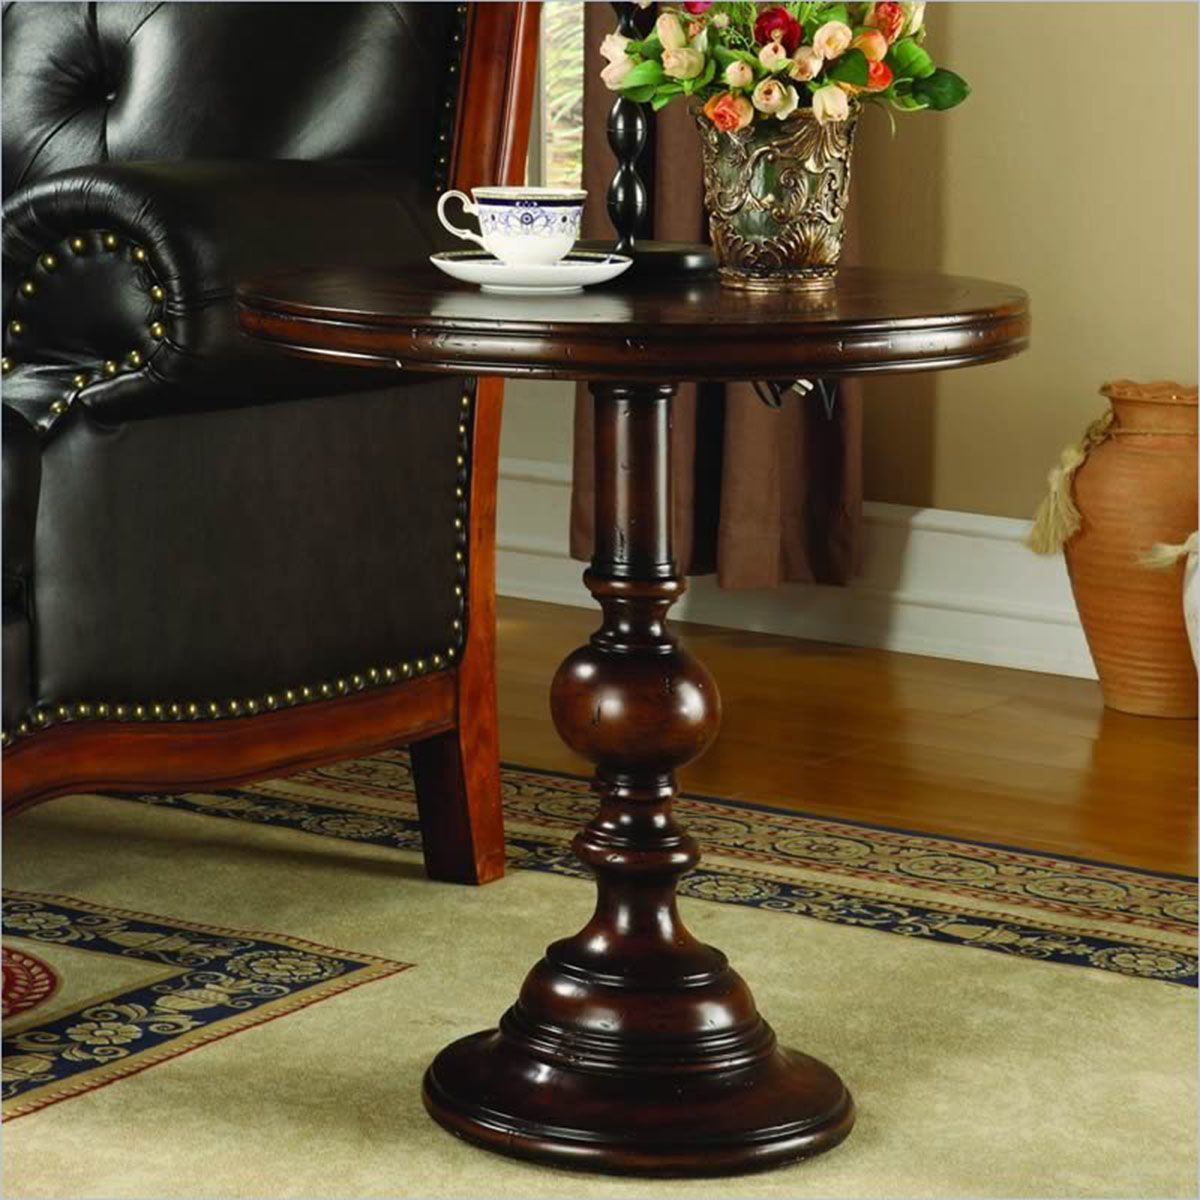 hooker furniture inch round pedestal accent table throne for drums square tablecloth sizes free coffee battery operated dining lamps pier one coupons printable patio cushions